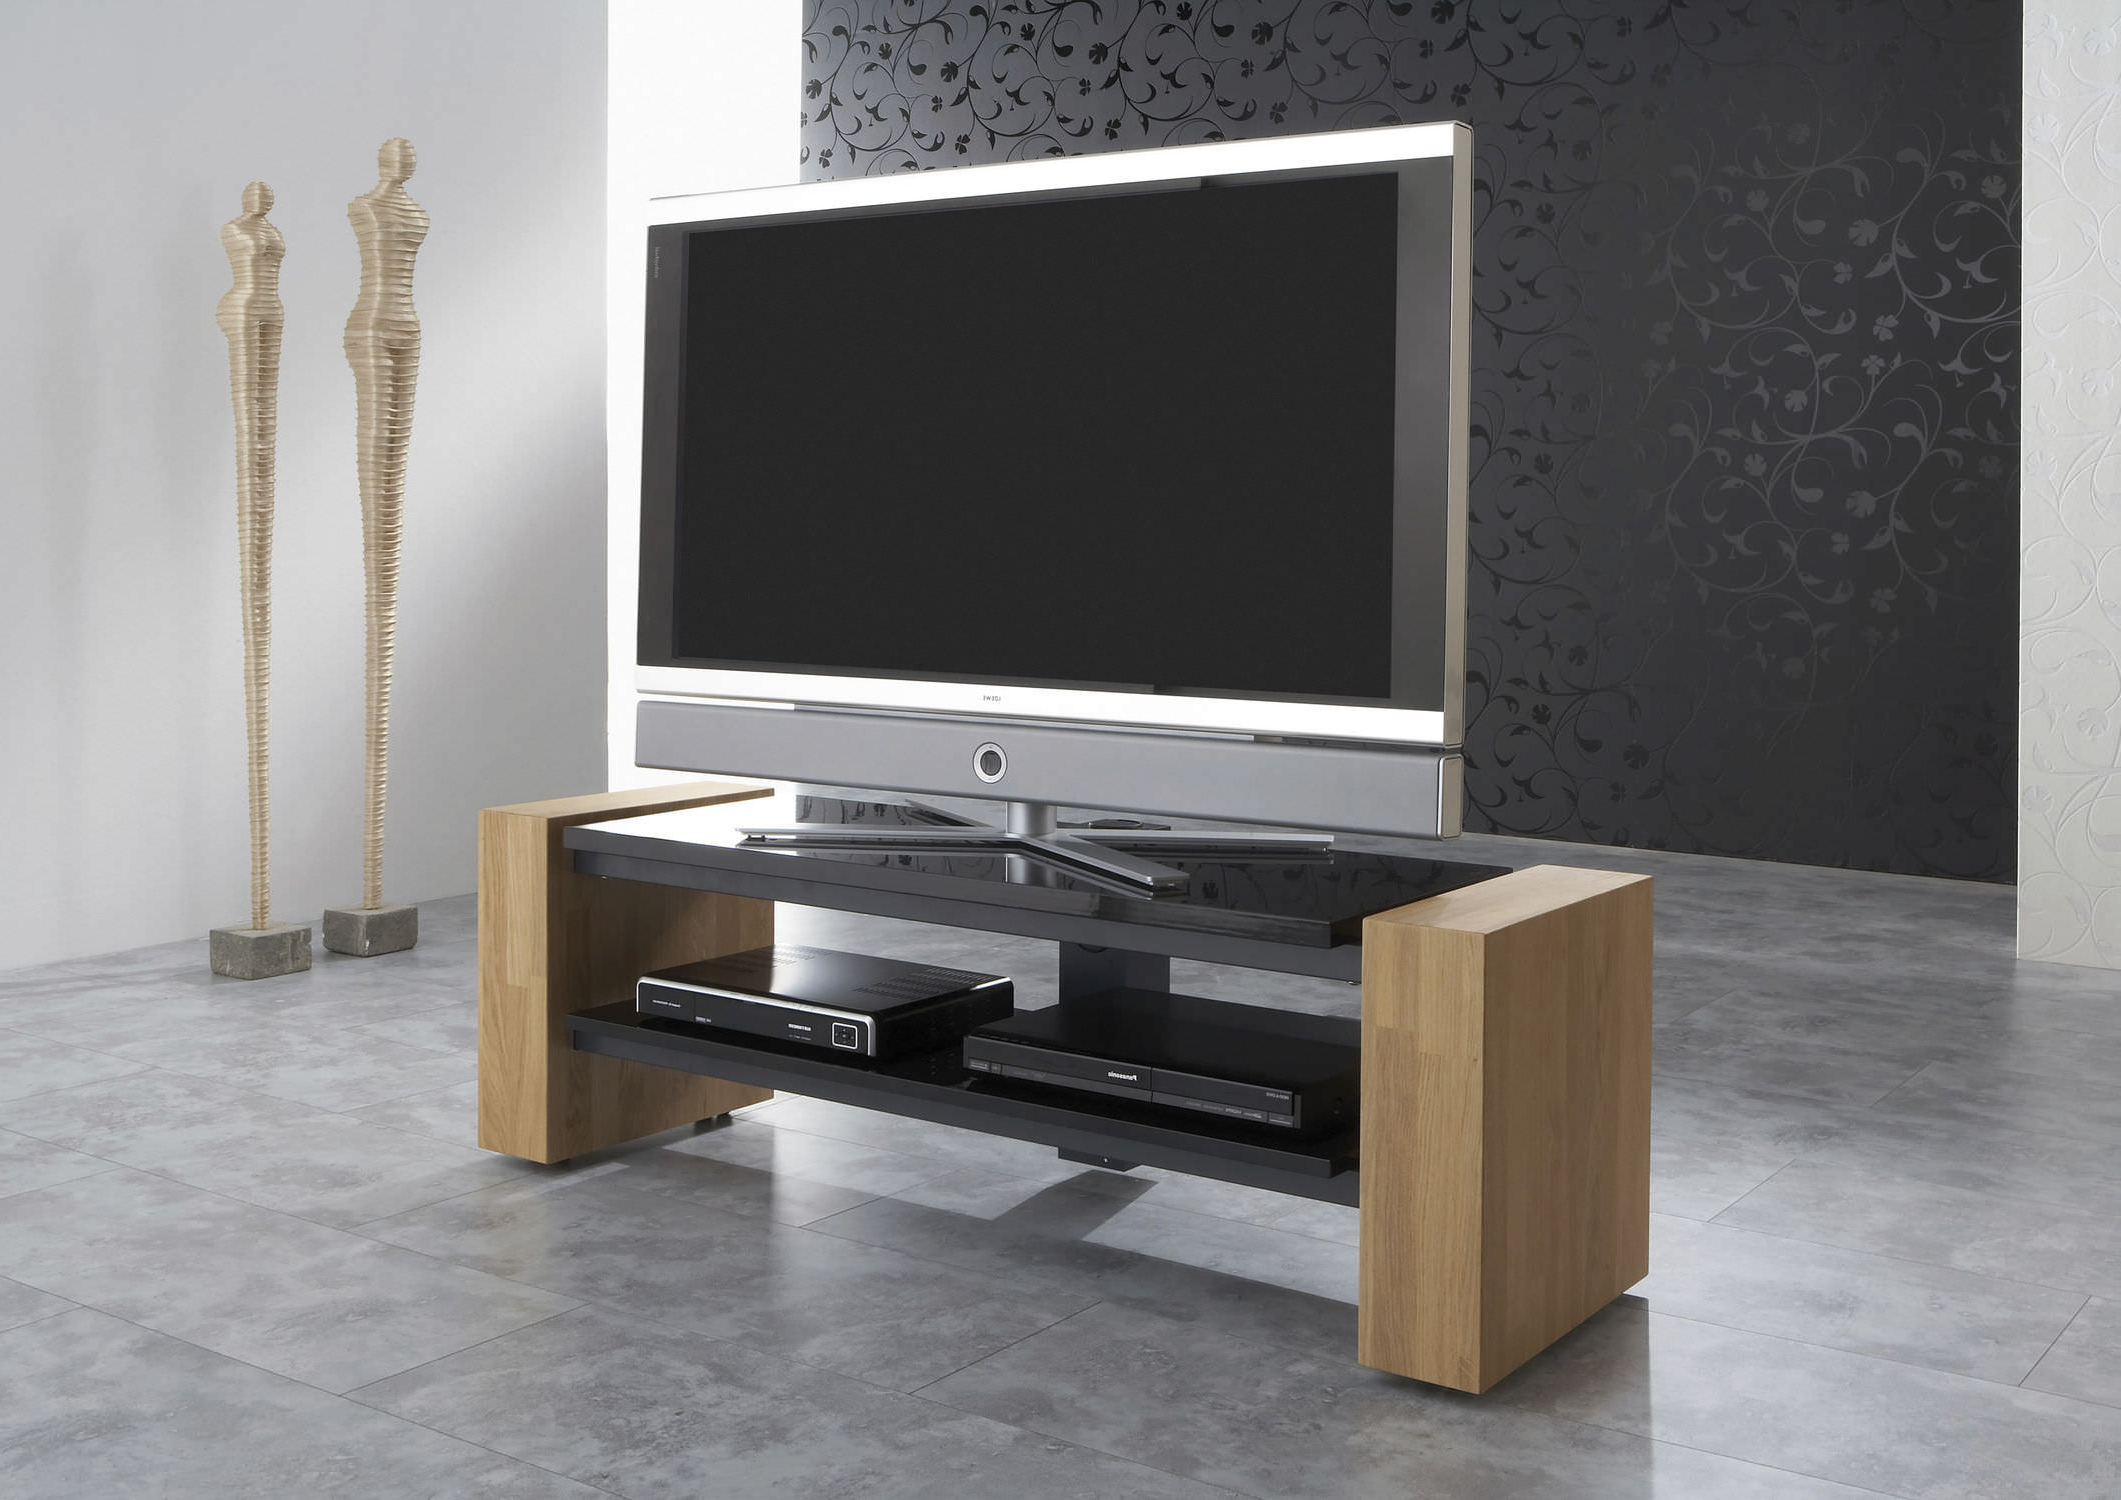 Fashionable Contemporary Tv Cabinets For Flat Screens Intended For Contemporary Tv Cabinet / With Screen Lift / Wooden / Lacquered Wood (Gallery 11 of 20)